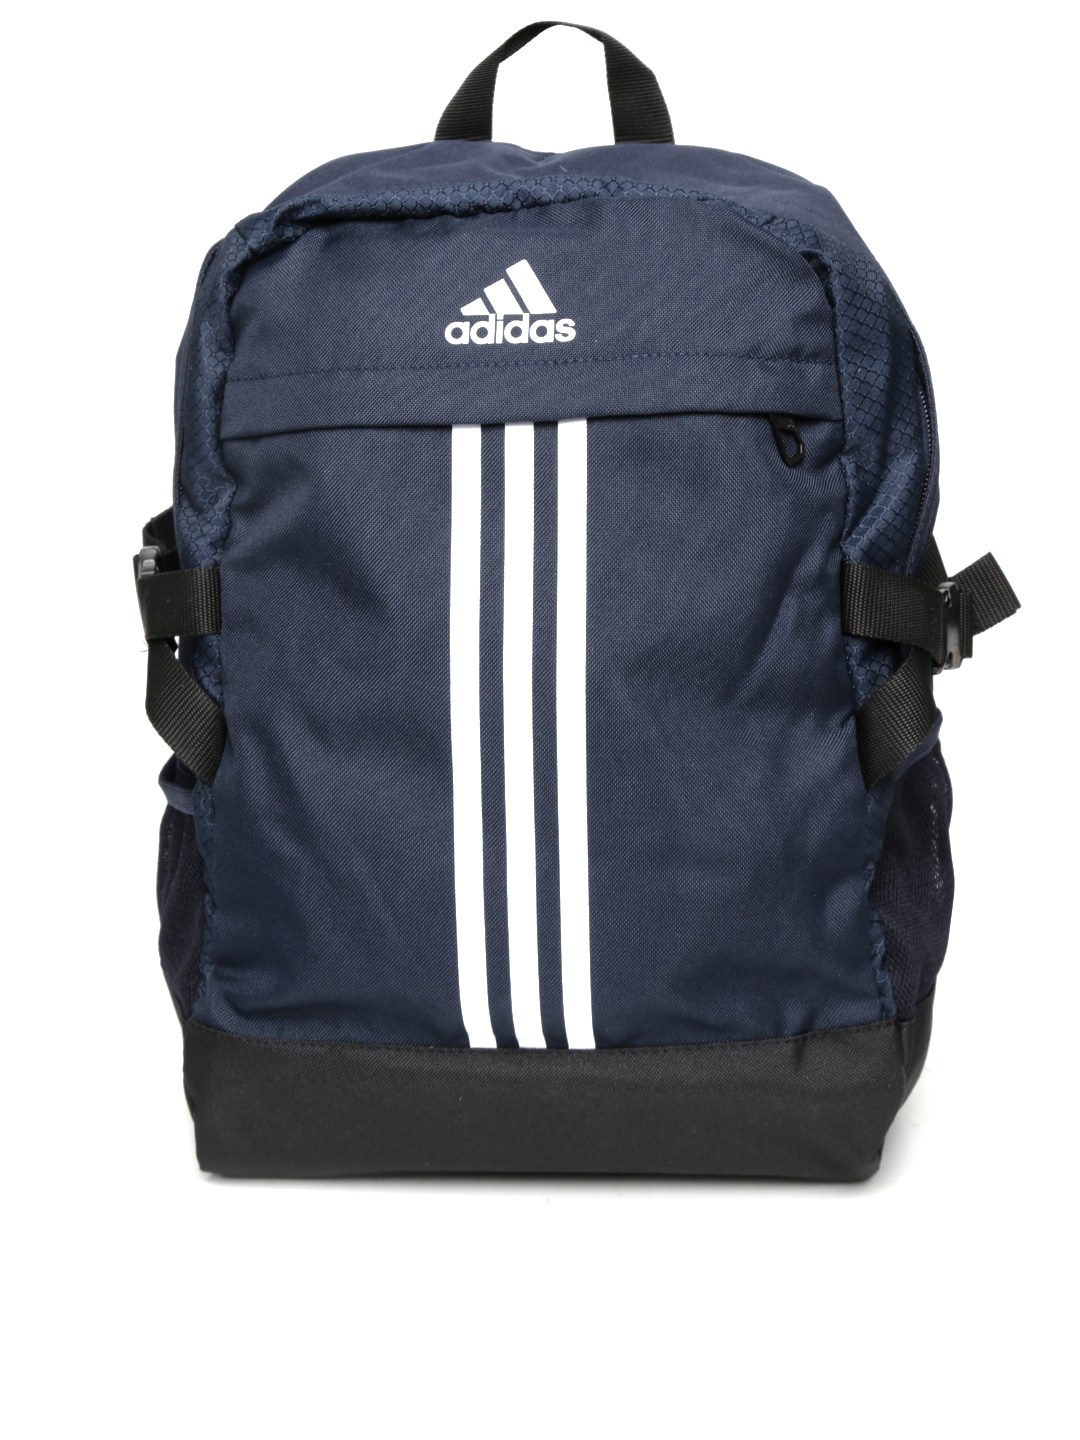 Adidas ay5092 Unisex Navy Power Iii M Striped Backpack - Best Price ... 42a05bd38c5d5